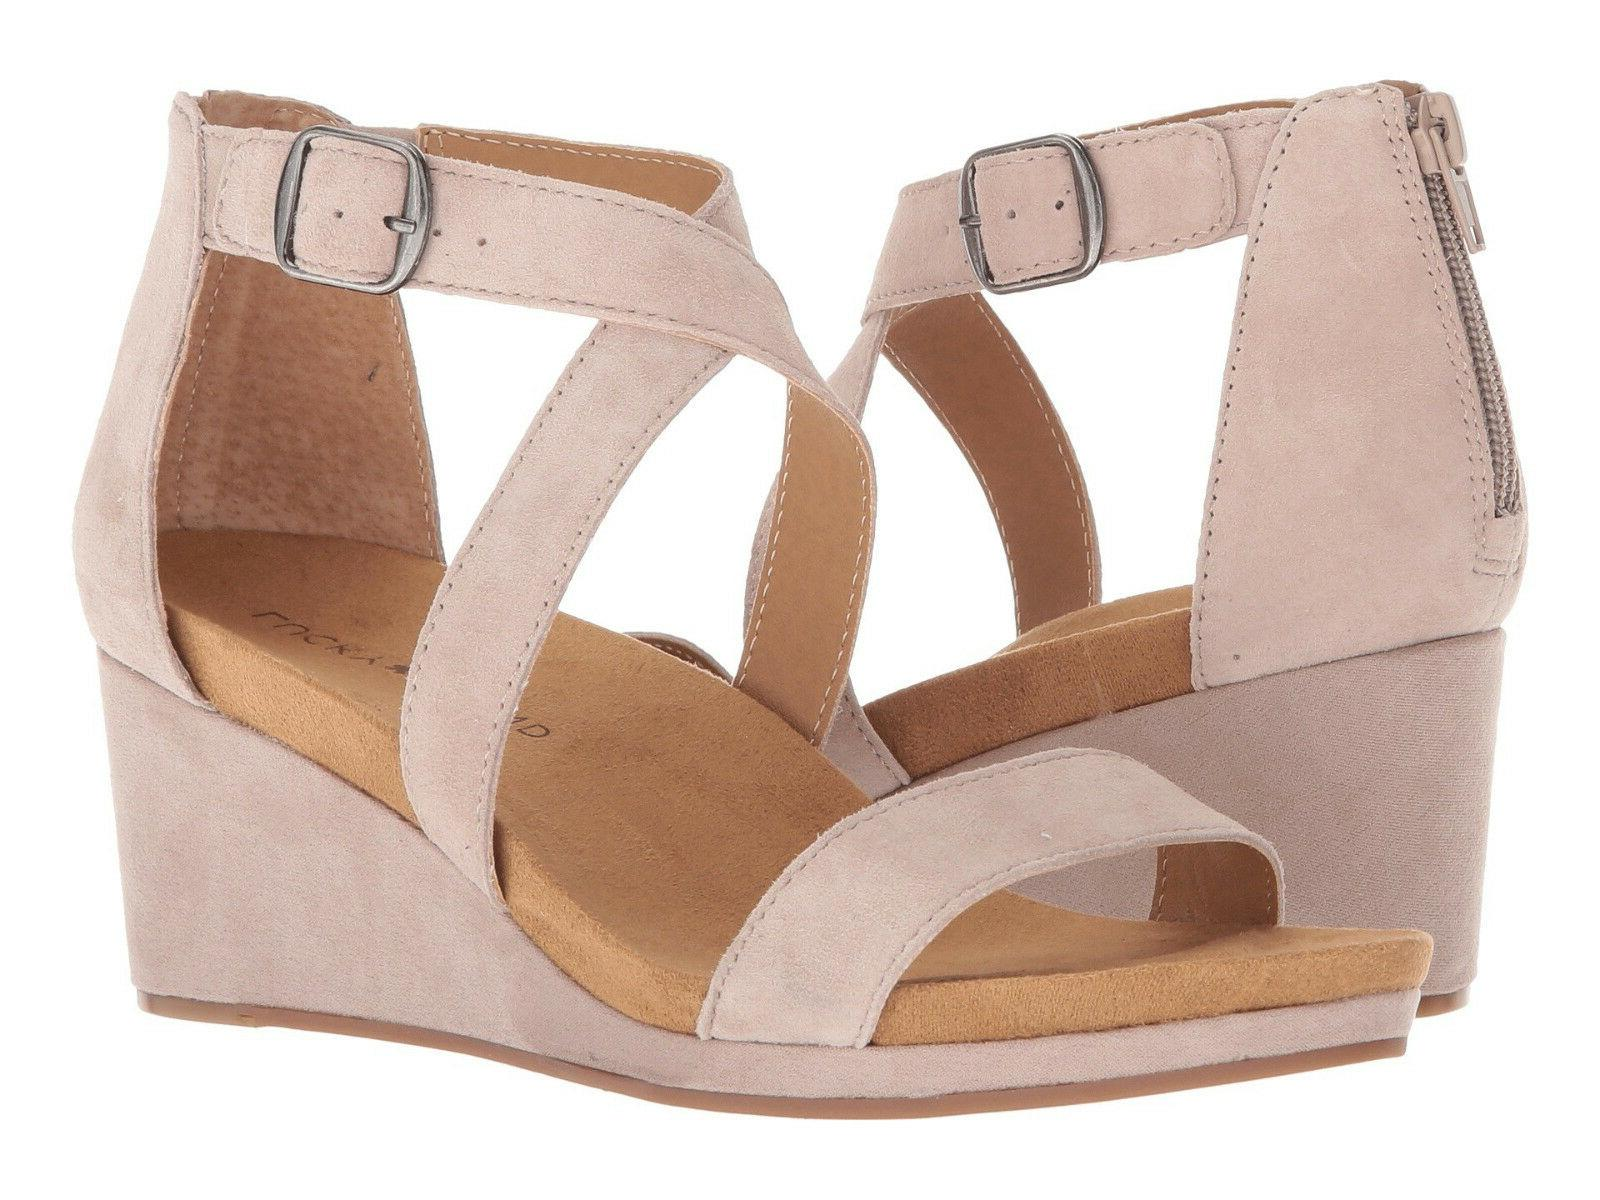 New In Box Womens Lucky Brand KENADEE Tipsy Taupe Suede Wedg